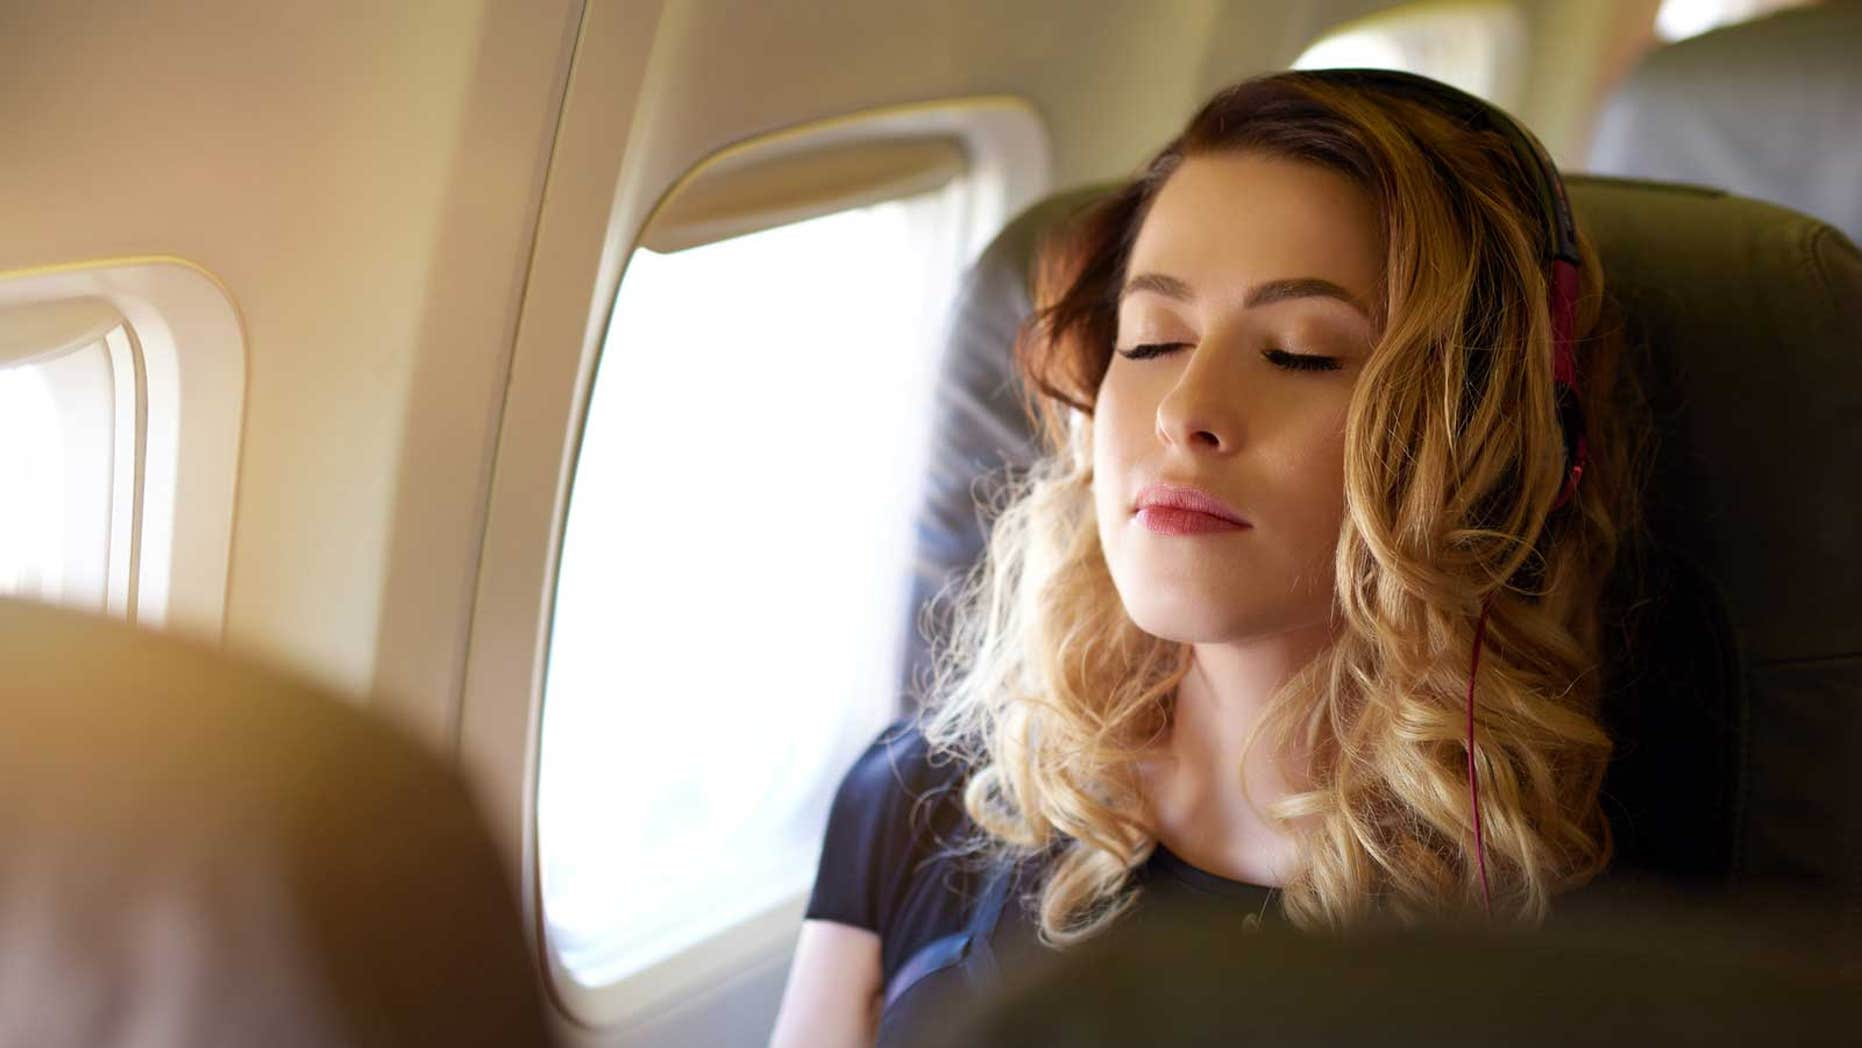 Chill out before a flight with these quick tips.